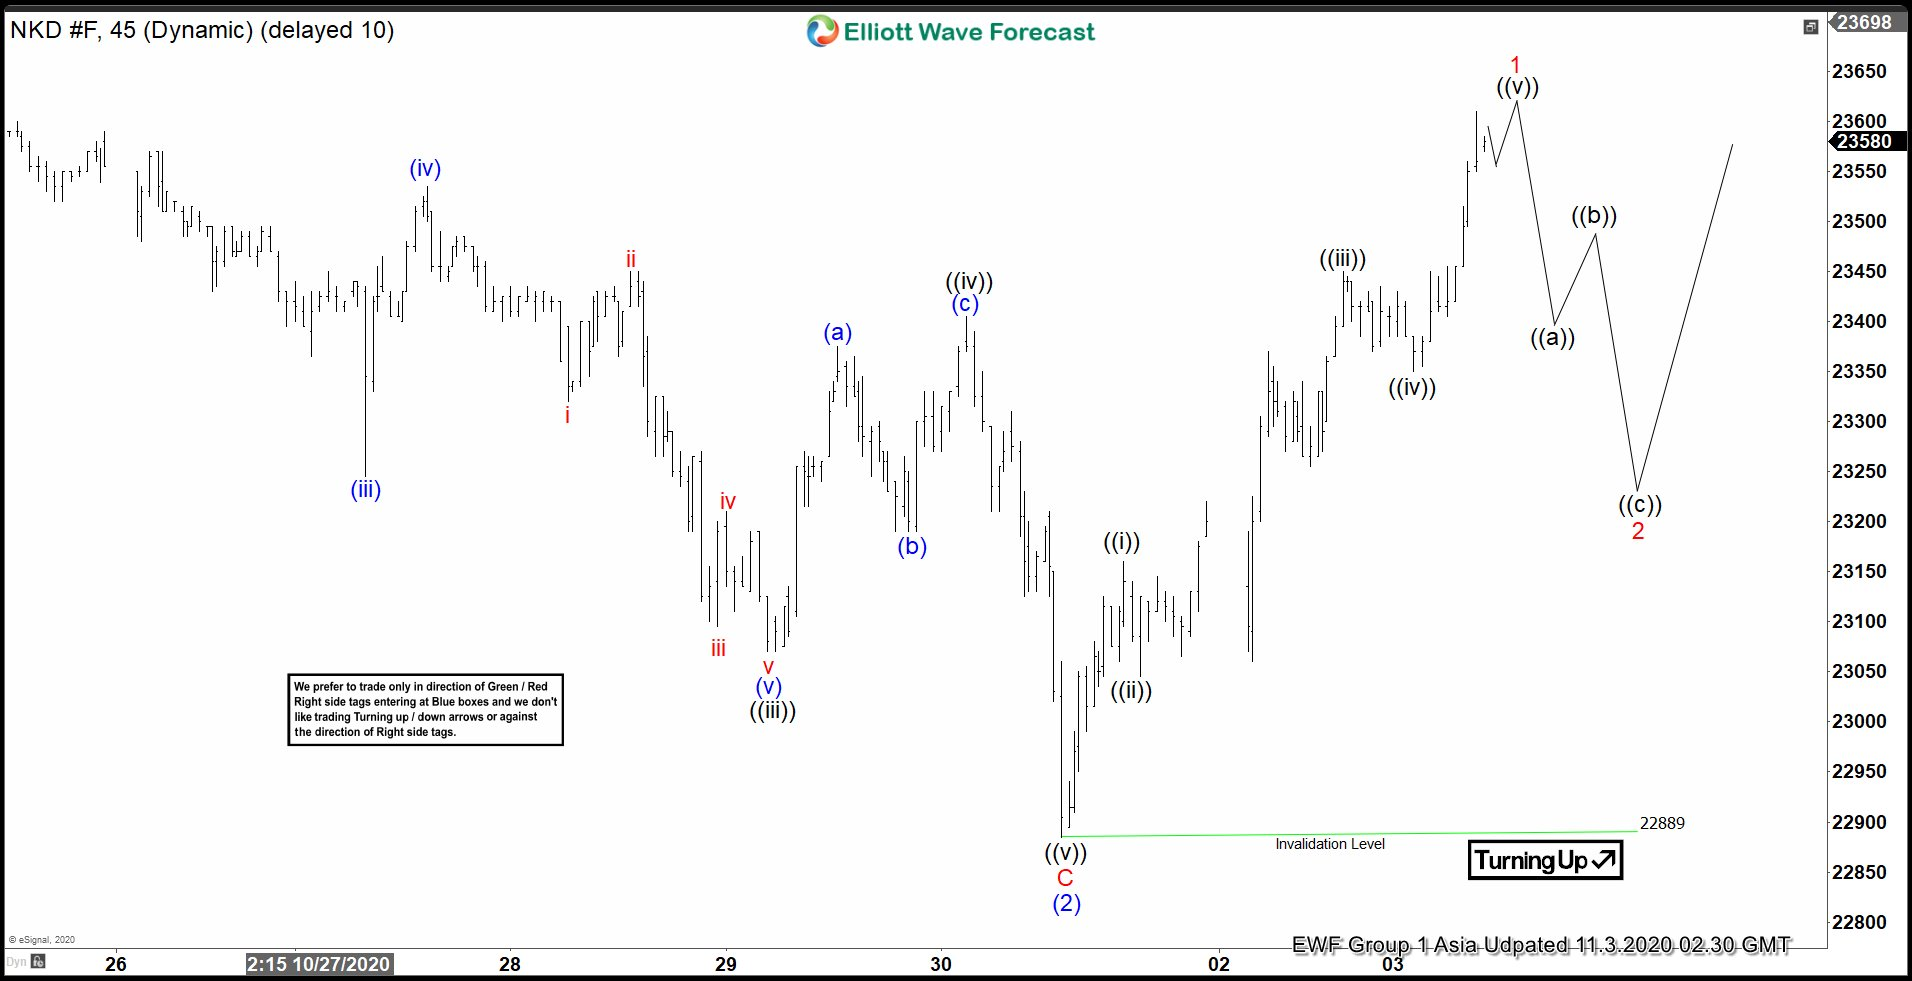 Elliott Wave View: Nikkei (NKD) Ready to Extend Higher